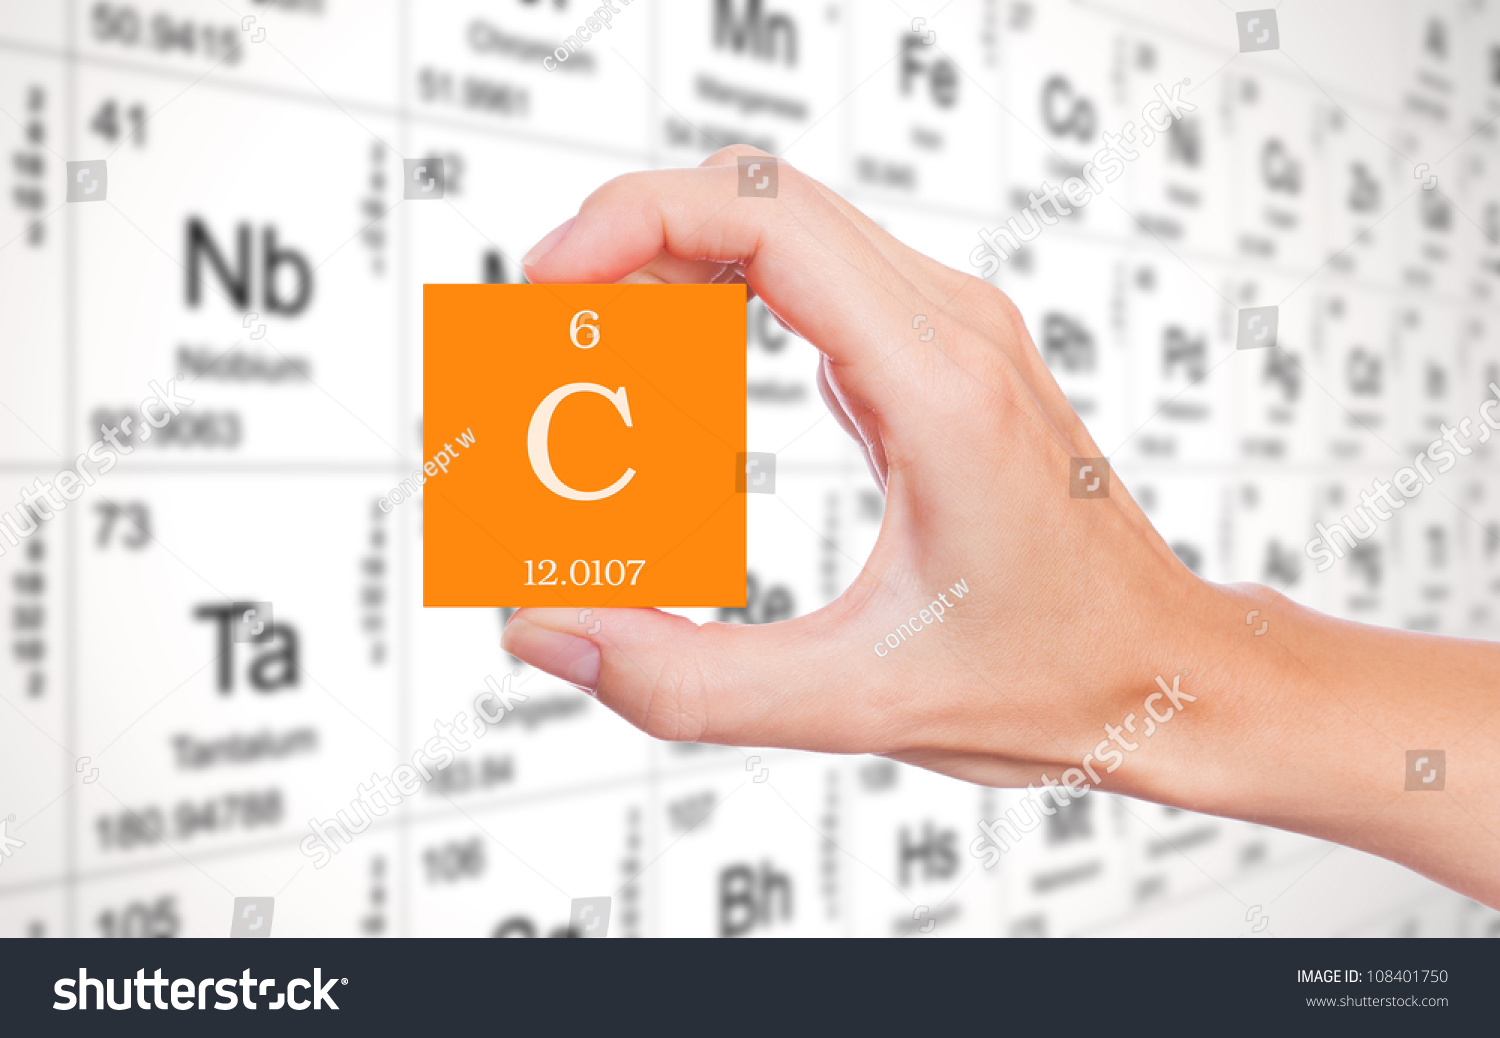 Carbon symbol handheld front periodic table stock photo 108401750 carbon symbol handheld in front of the periodic table gamestrikefo Gallery